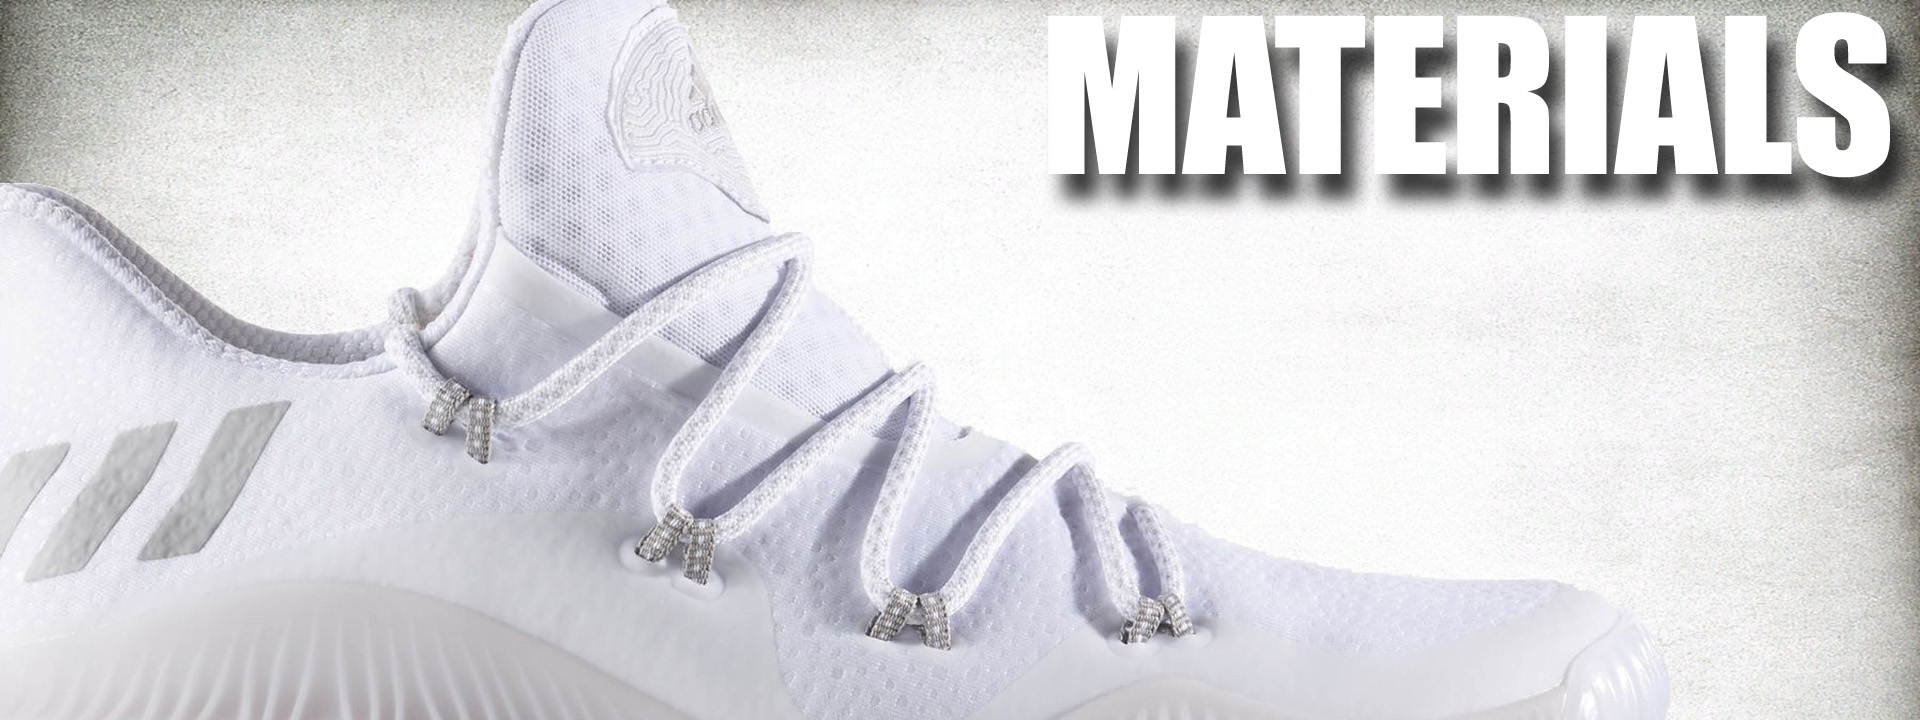 adidas Crazy Explosive Low Performance Review Materials